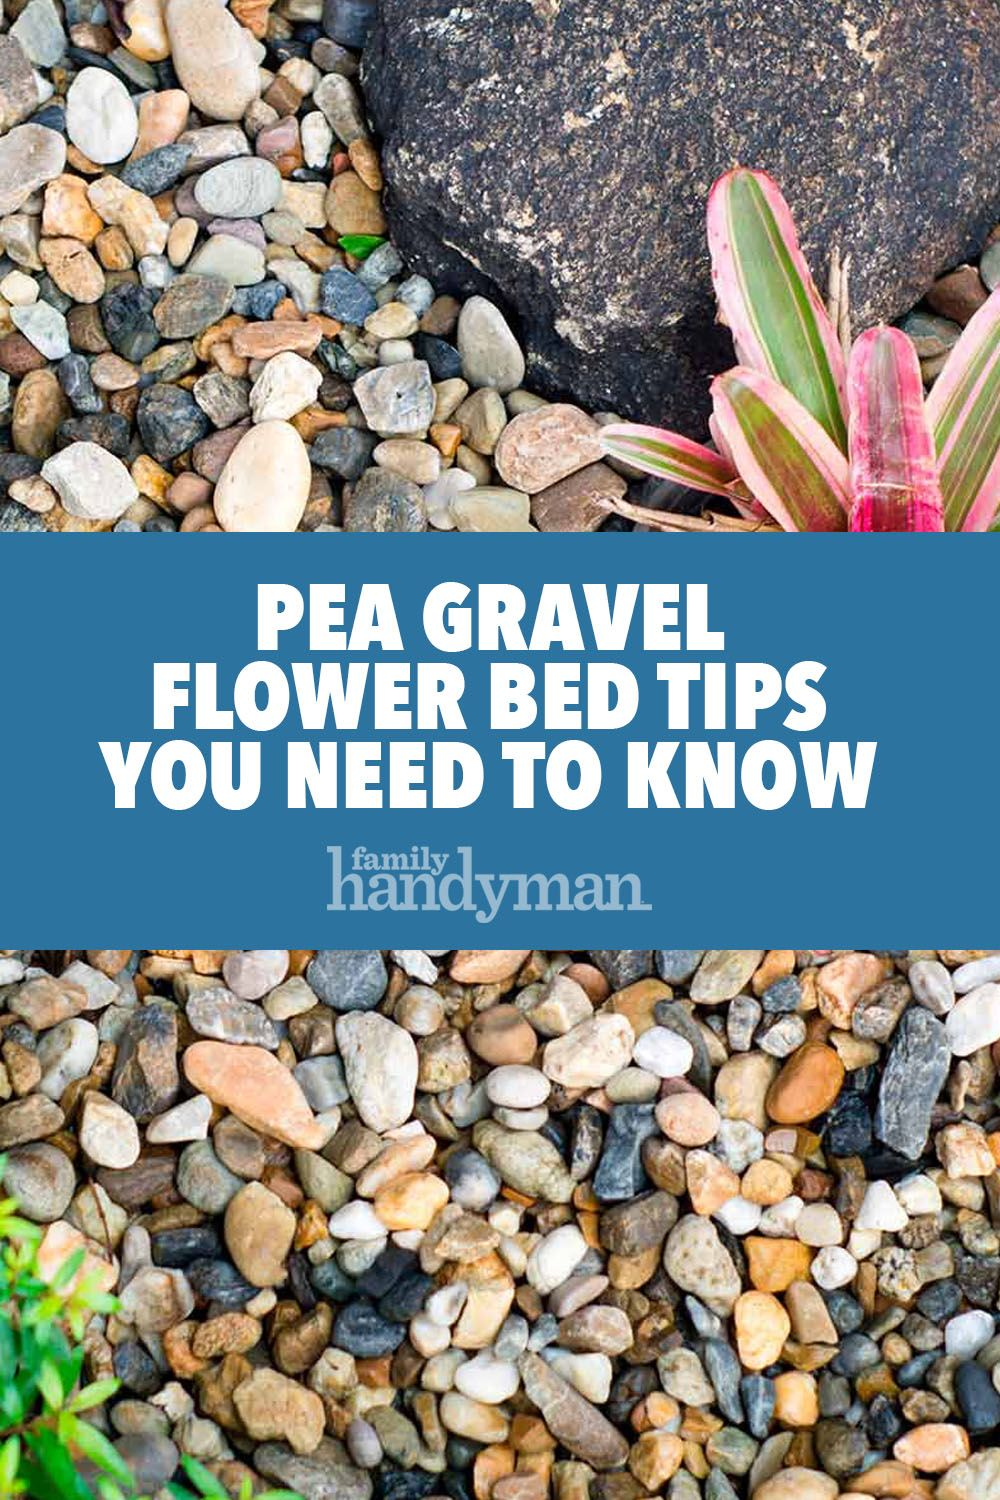 Pea Gravel Flower Bed Tips You Need to Know